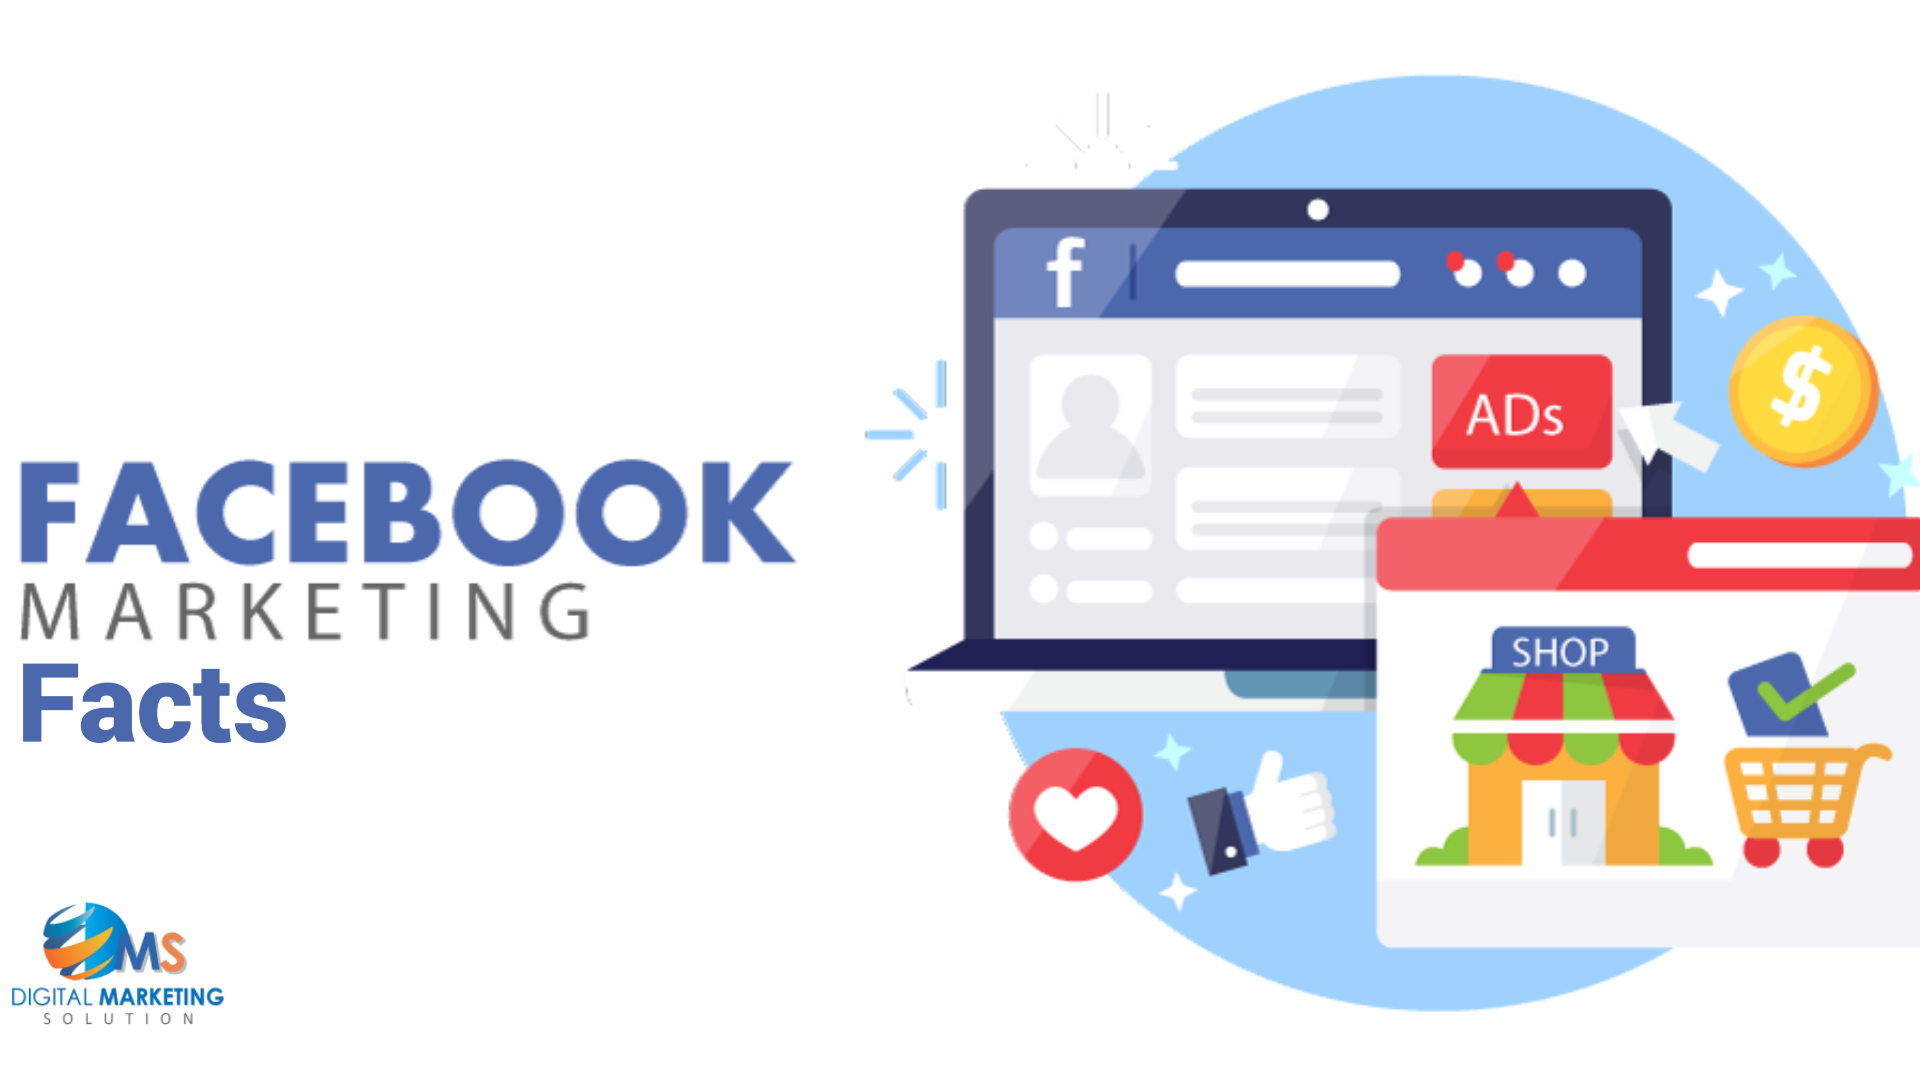 7 Facts of Facebook Marketing